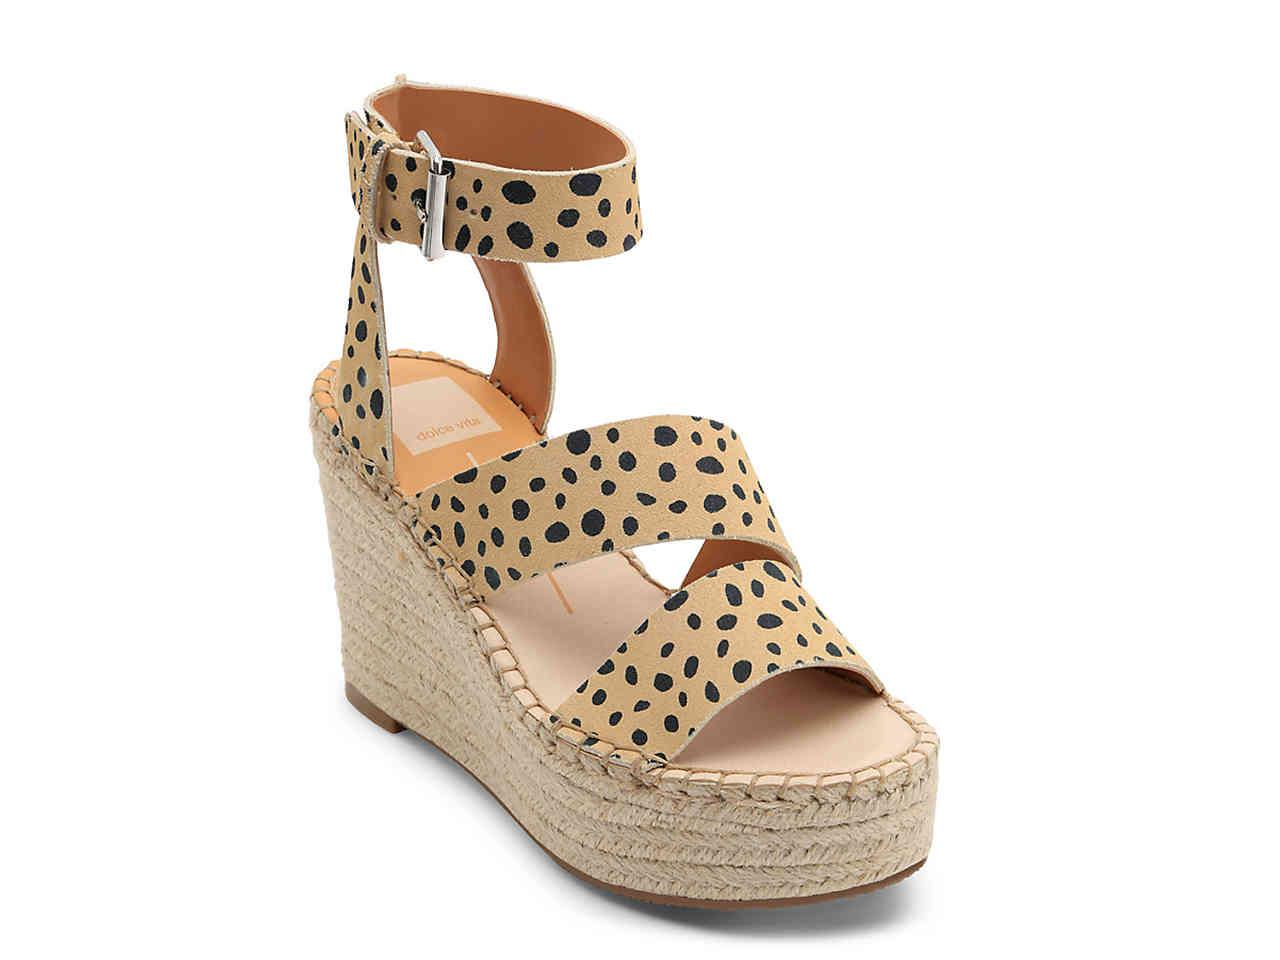 d1077109e33 Lyst - Dolce Vita Shayla Espadrille Wedge Sandal in Natural